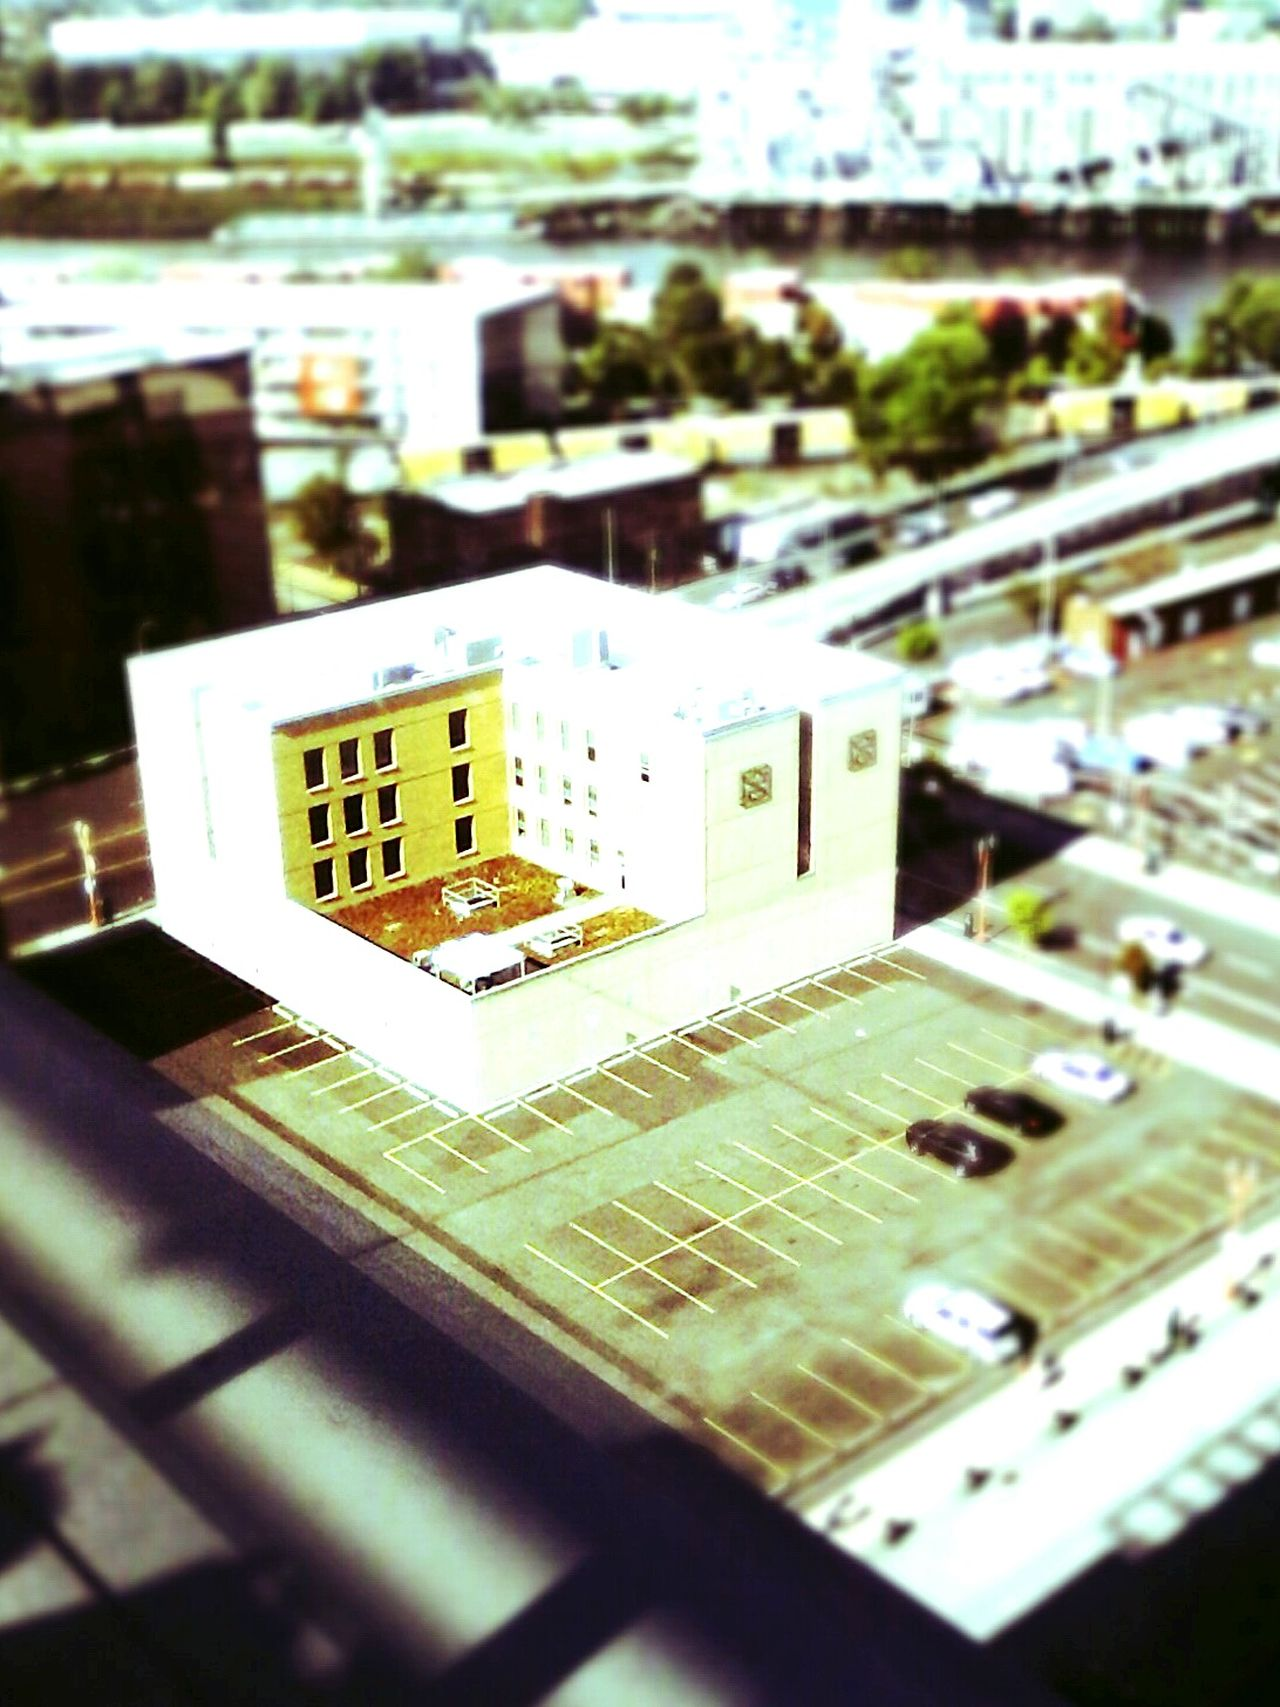 from the rooftop, it looks like a model Portland Photography Fast Through A Slow-motion Landscape Architecture Urban Architecture Color Photography Downshot City View  It Isn't As It Seems Parkplatz